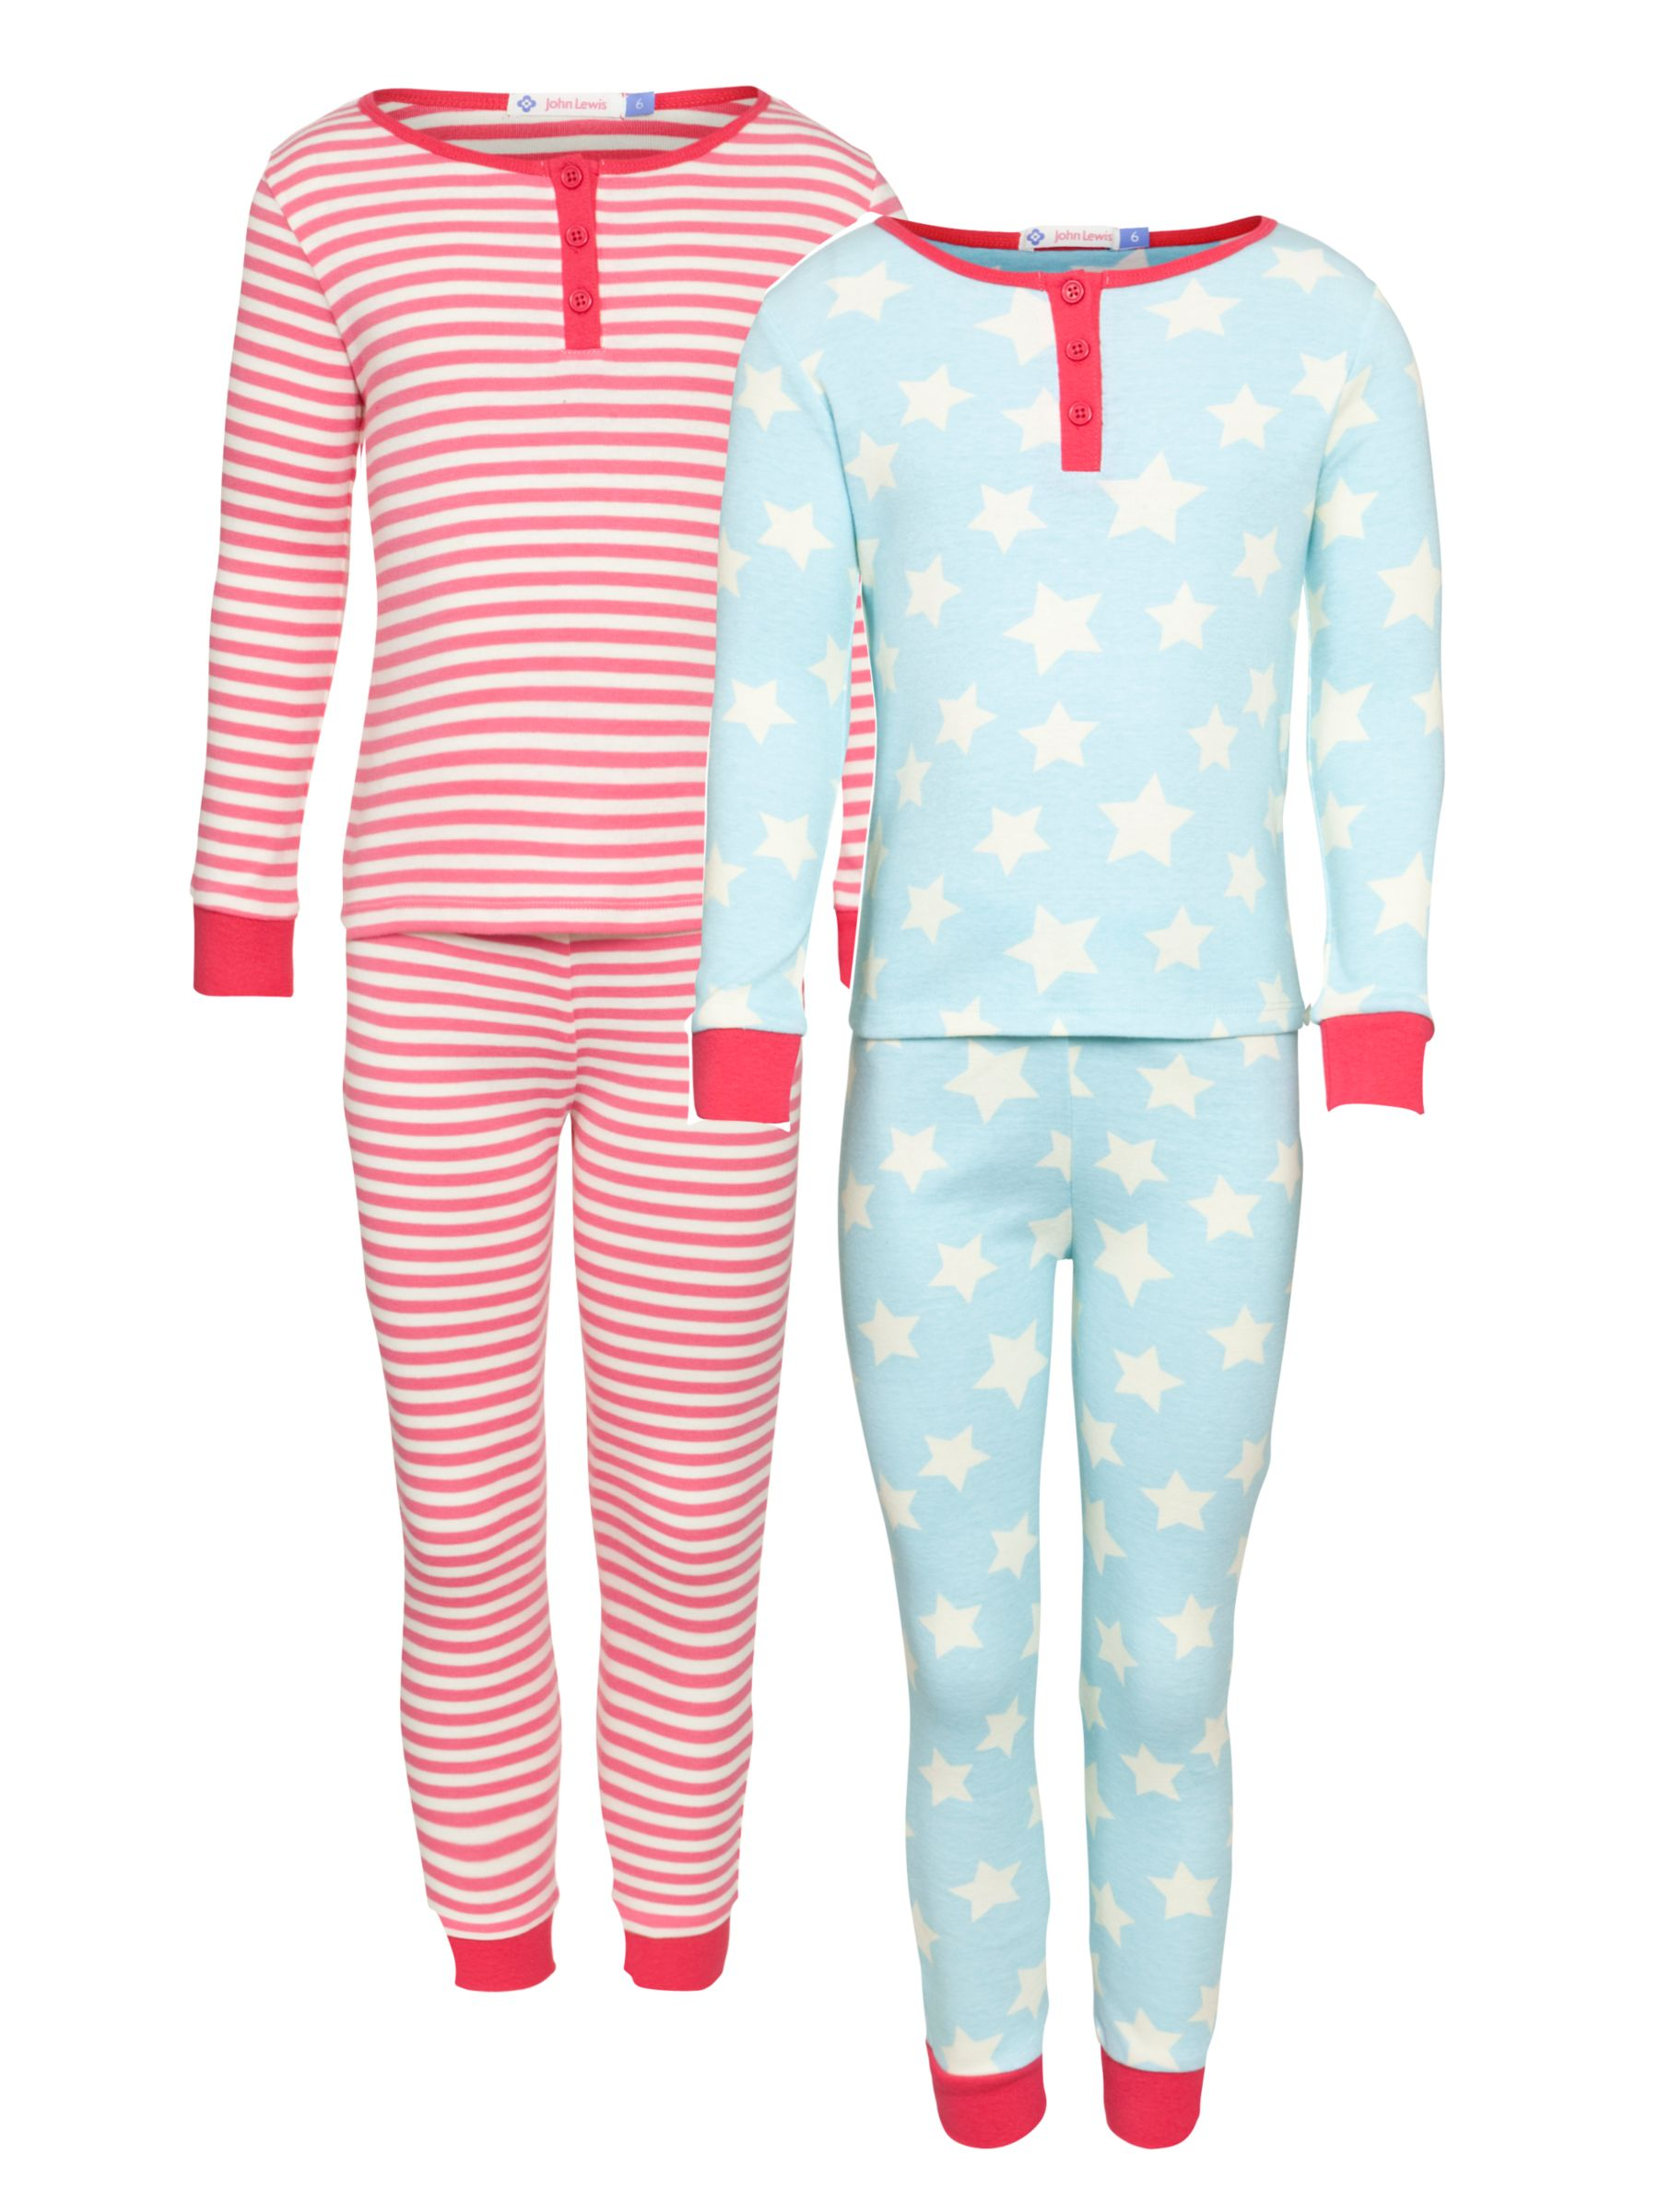 John Lewis Girl Stars and Stripes Pyjamas, Pack of 2, Red/Blue